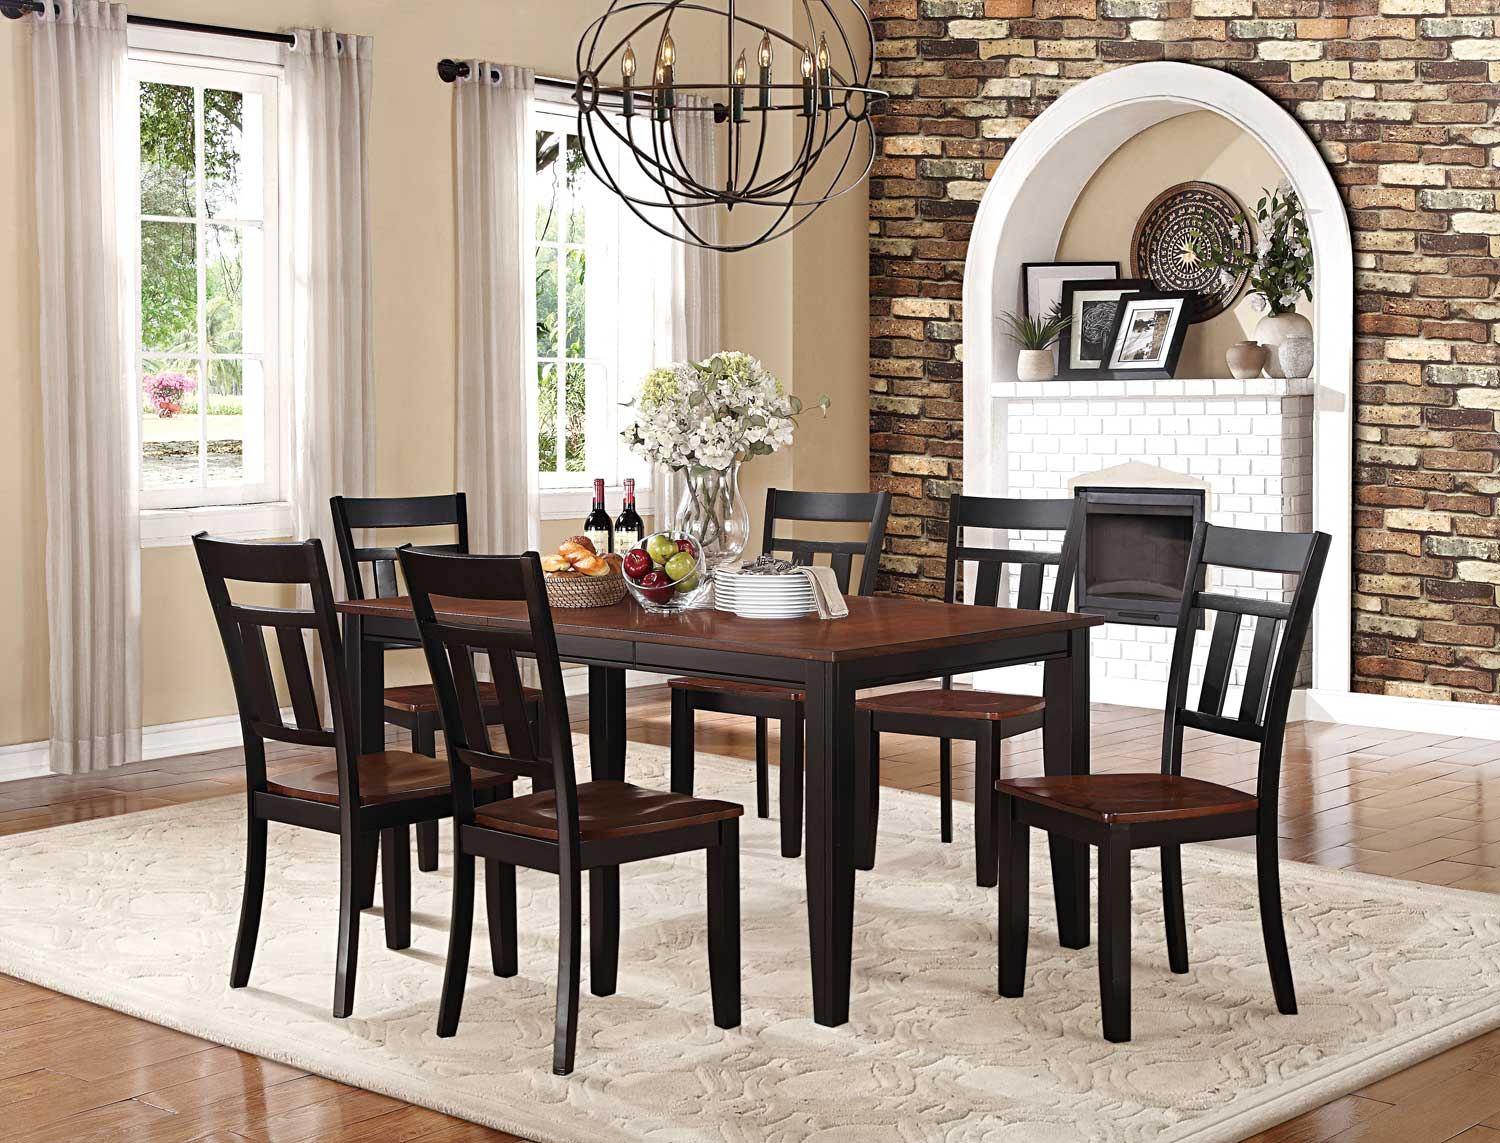 Homelegance Westport Dining Set - Two tone black/cherry